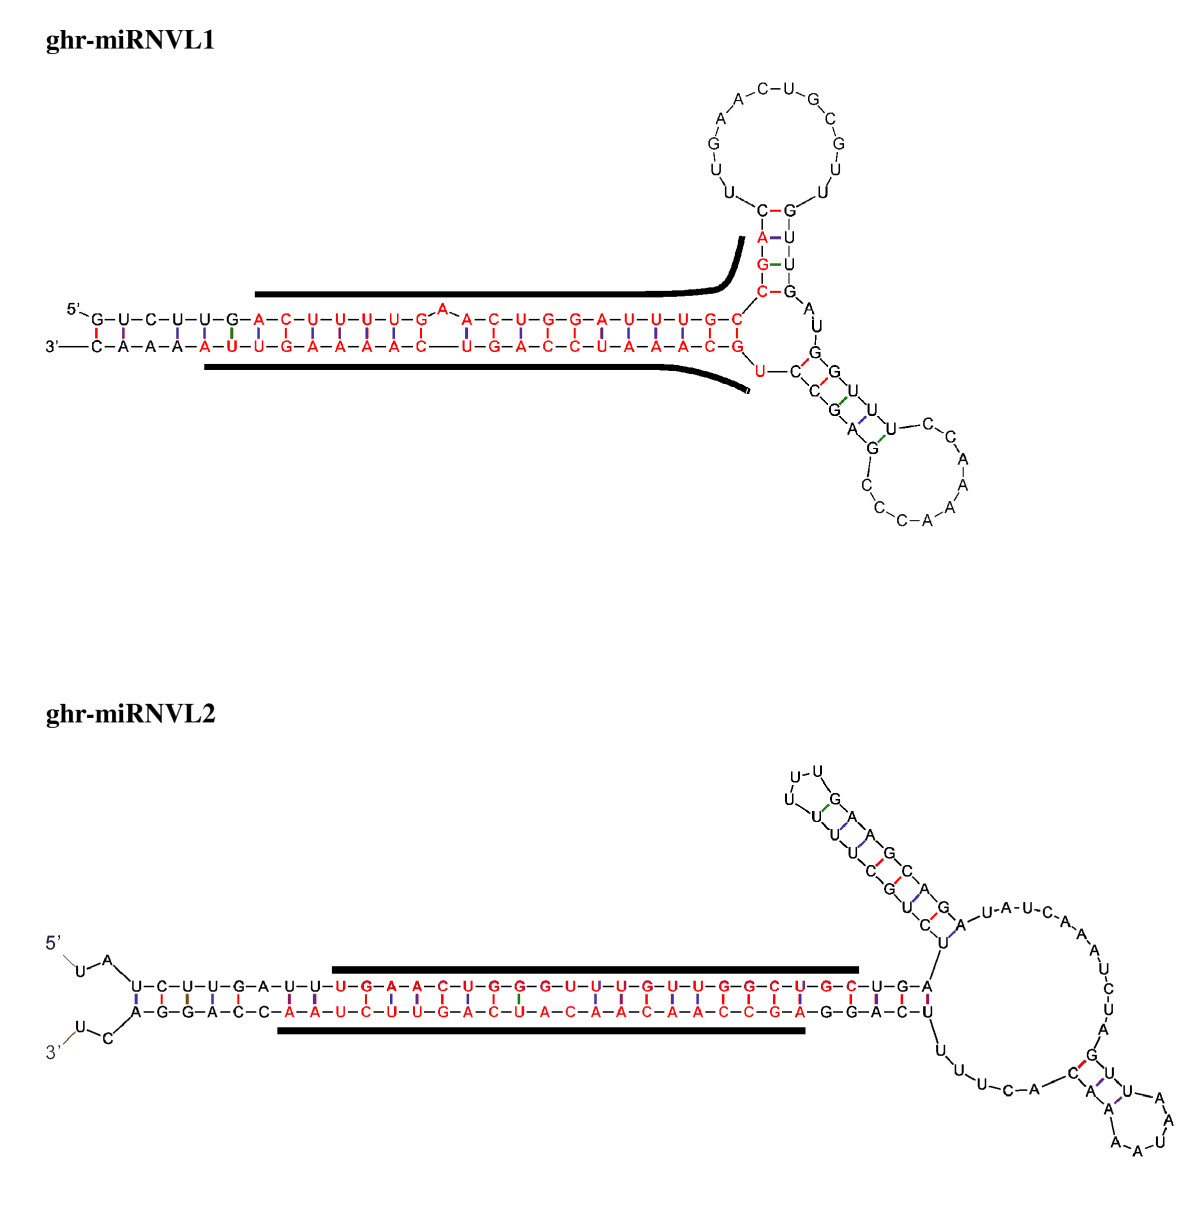 http://static-content.springer.com/image/art%3A10.1186%2F1471-2164-10-457/MediaObjects/12864_2009_Article_2341_Fig5_HTML.jpg